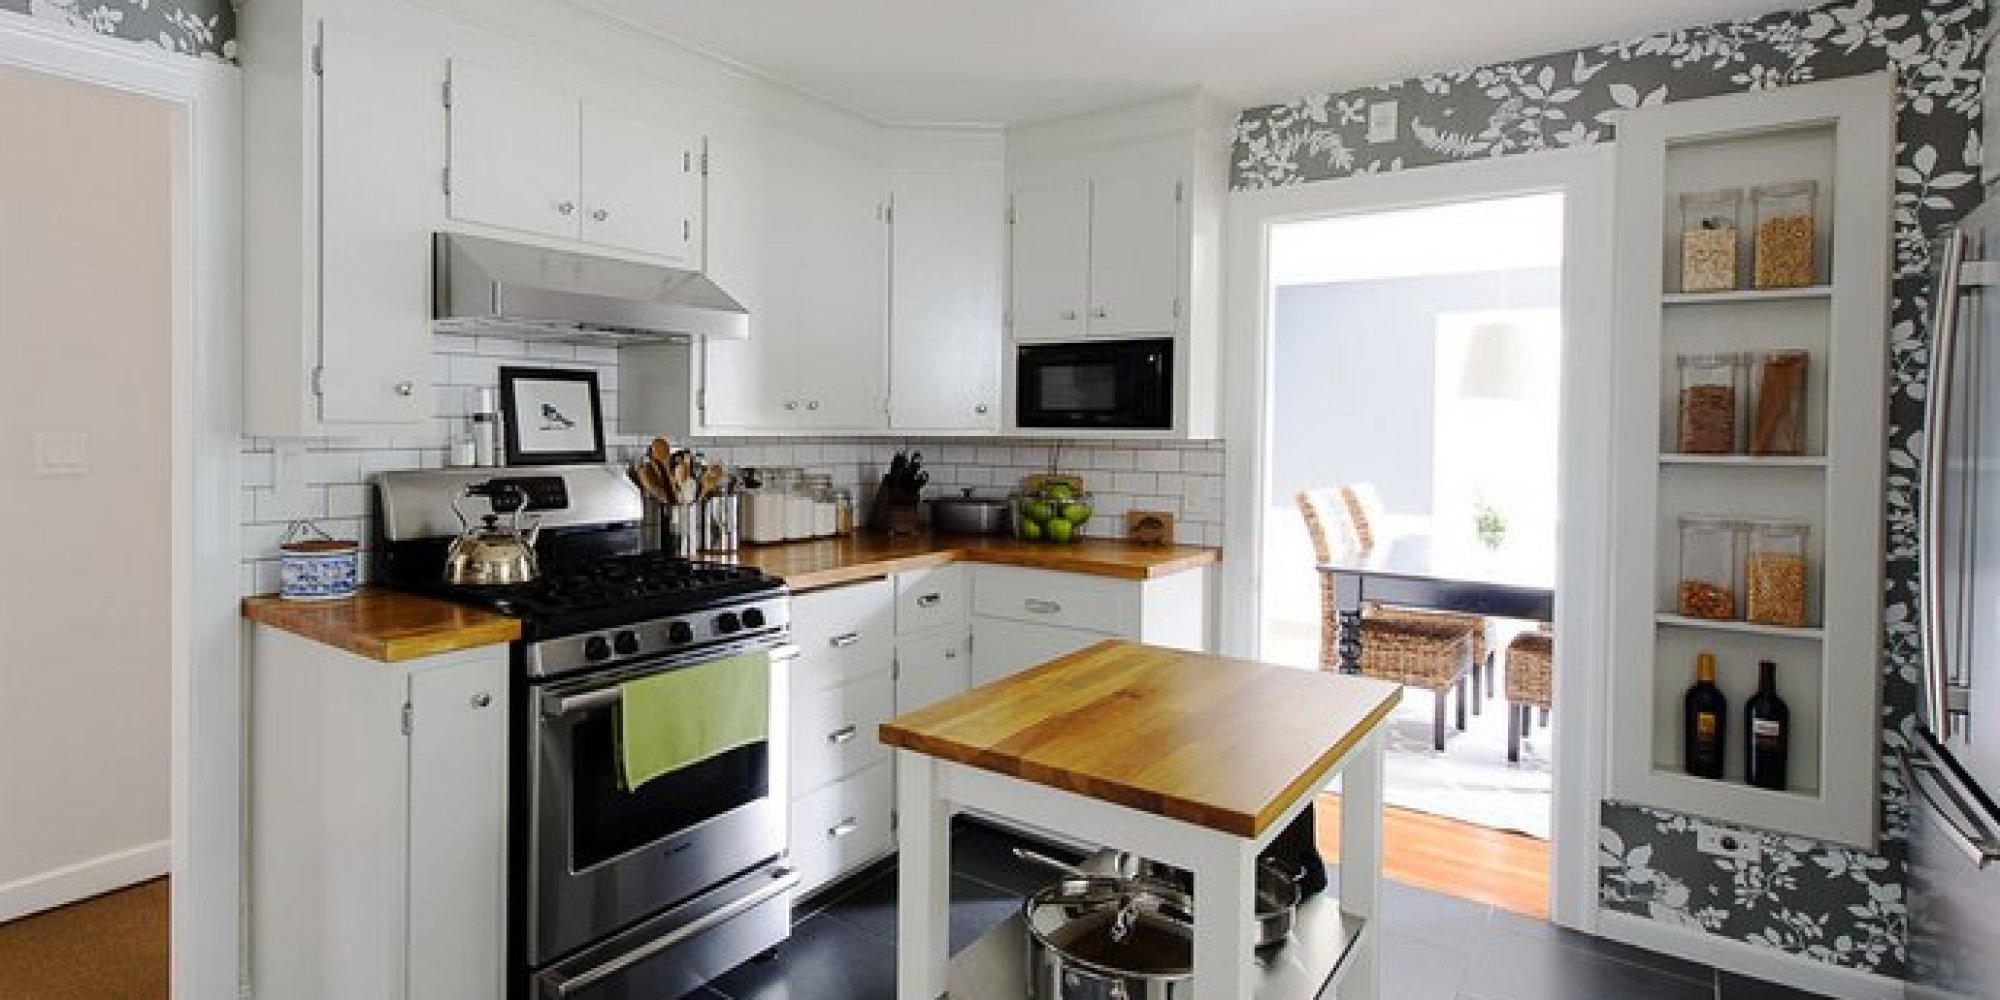 19 inexpensive ways to fix up your kitchen photos huffpost - Budget Kitchen Ideas